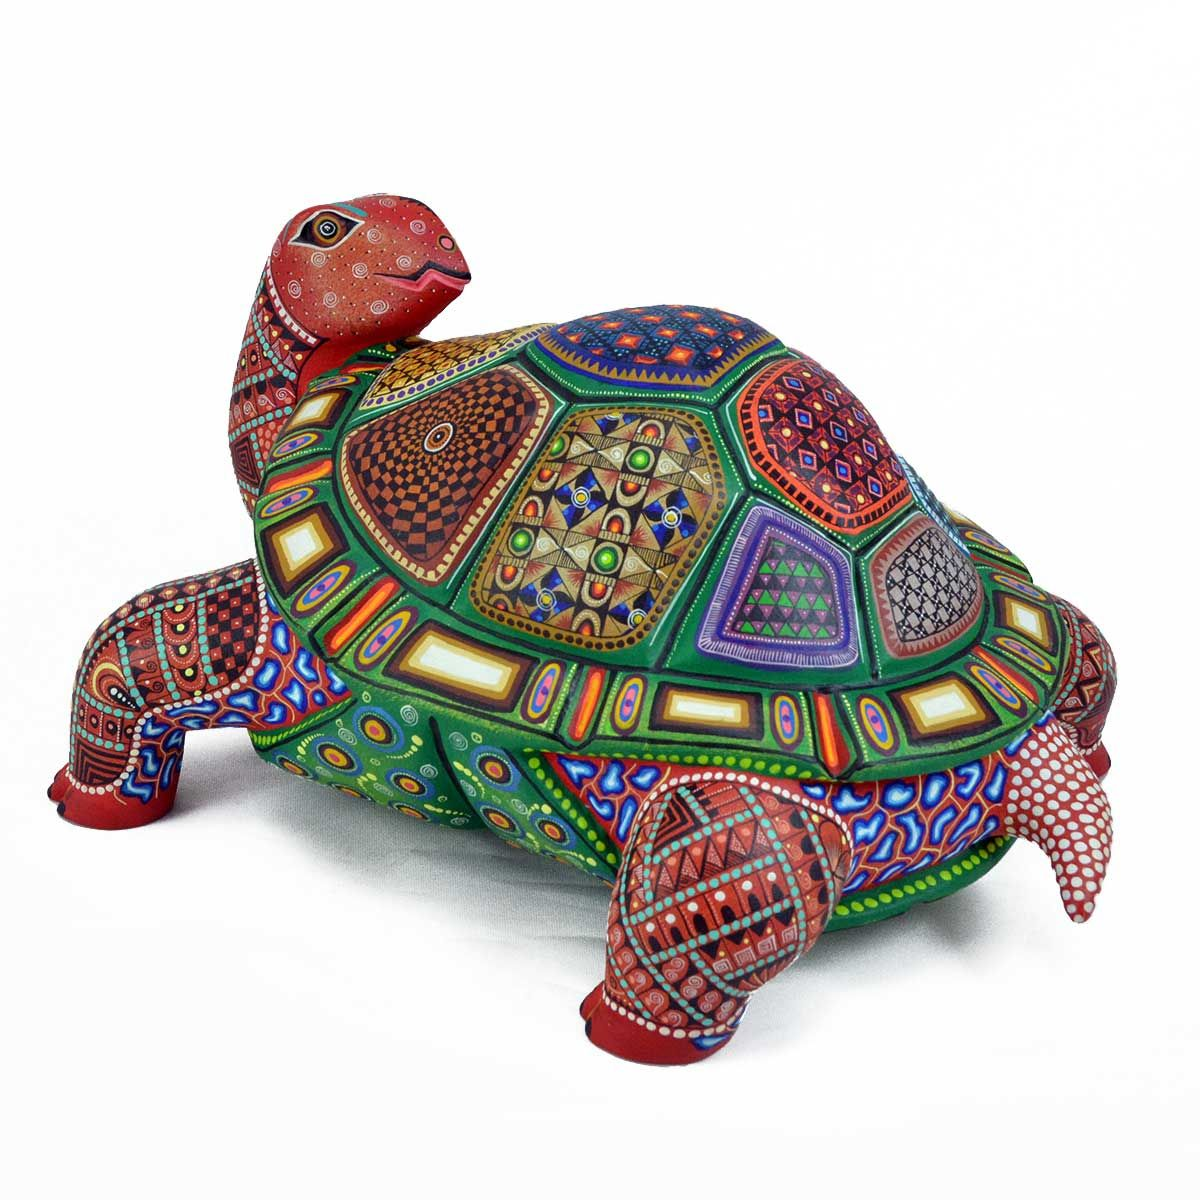 Oaxacan Wood Carving Alebrijes Pinterest Wood carving and Artwork